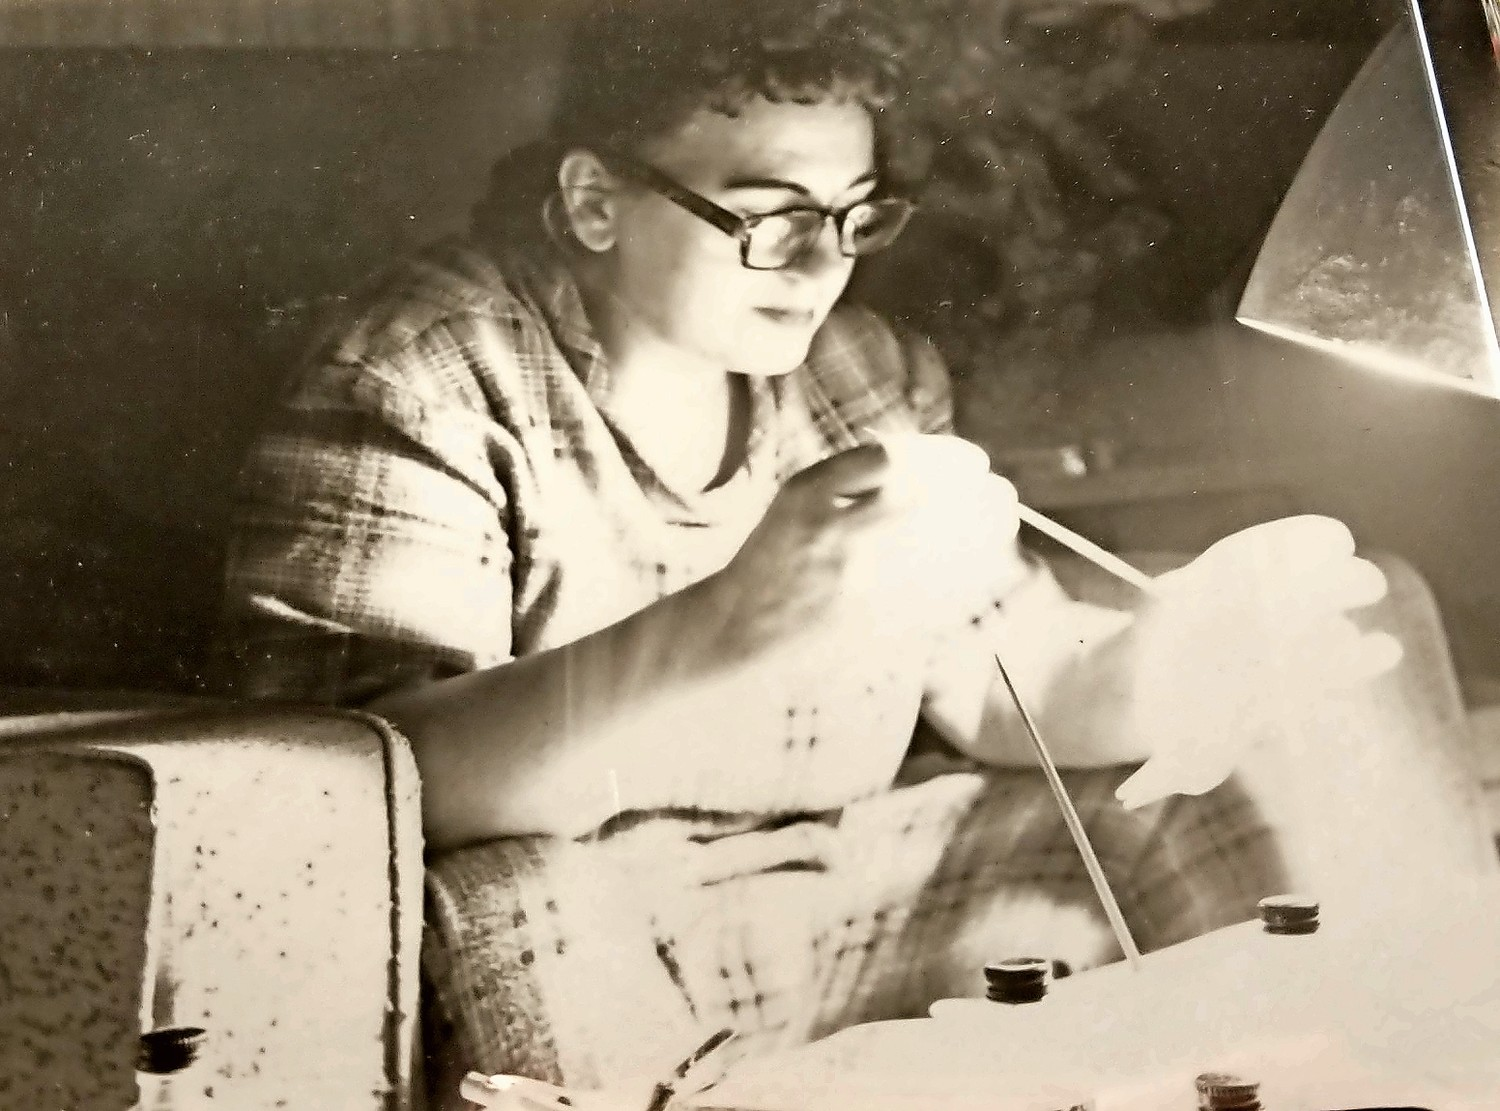 Charlie Franza snapped a photo of Nettie at her craft table in the 1960s.